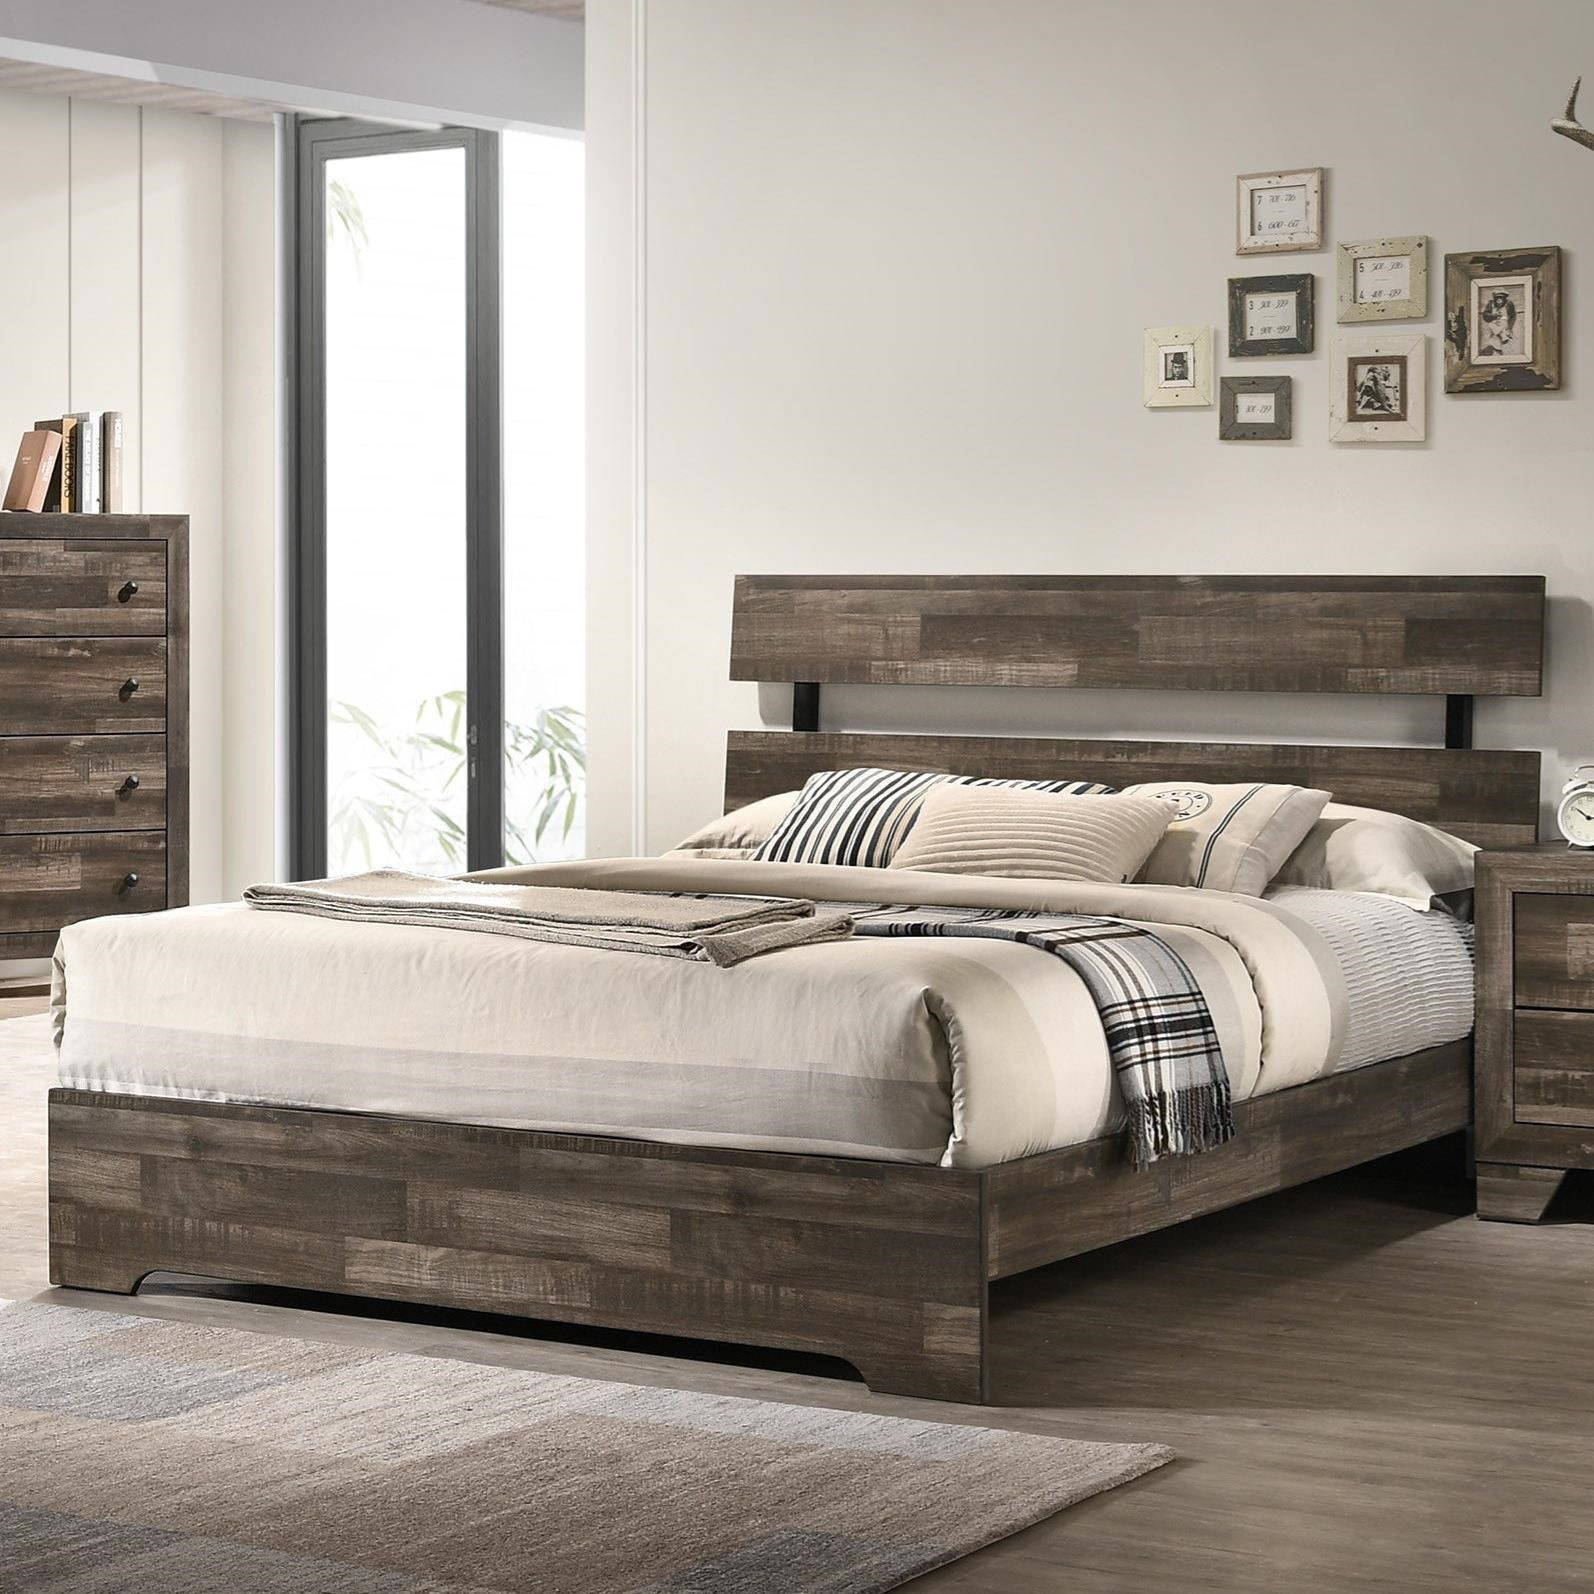 Atticus King Bed by Crown Mark at Northeast Factory Direct